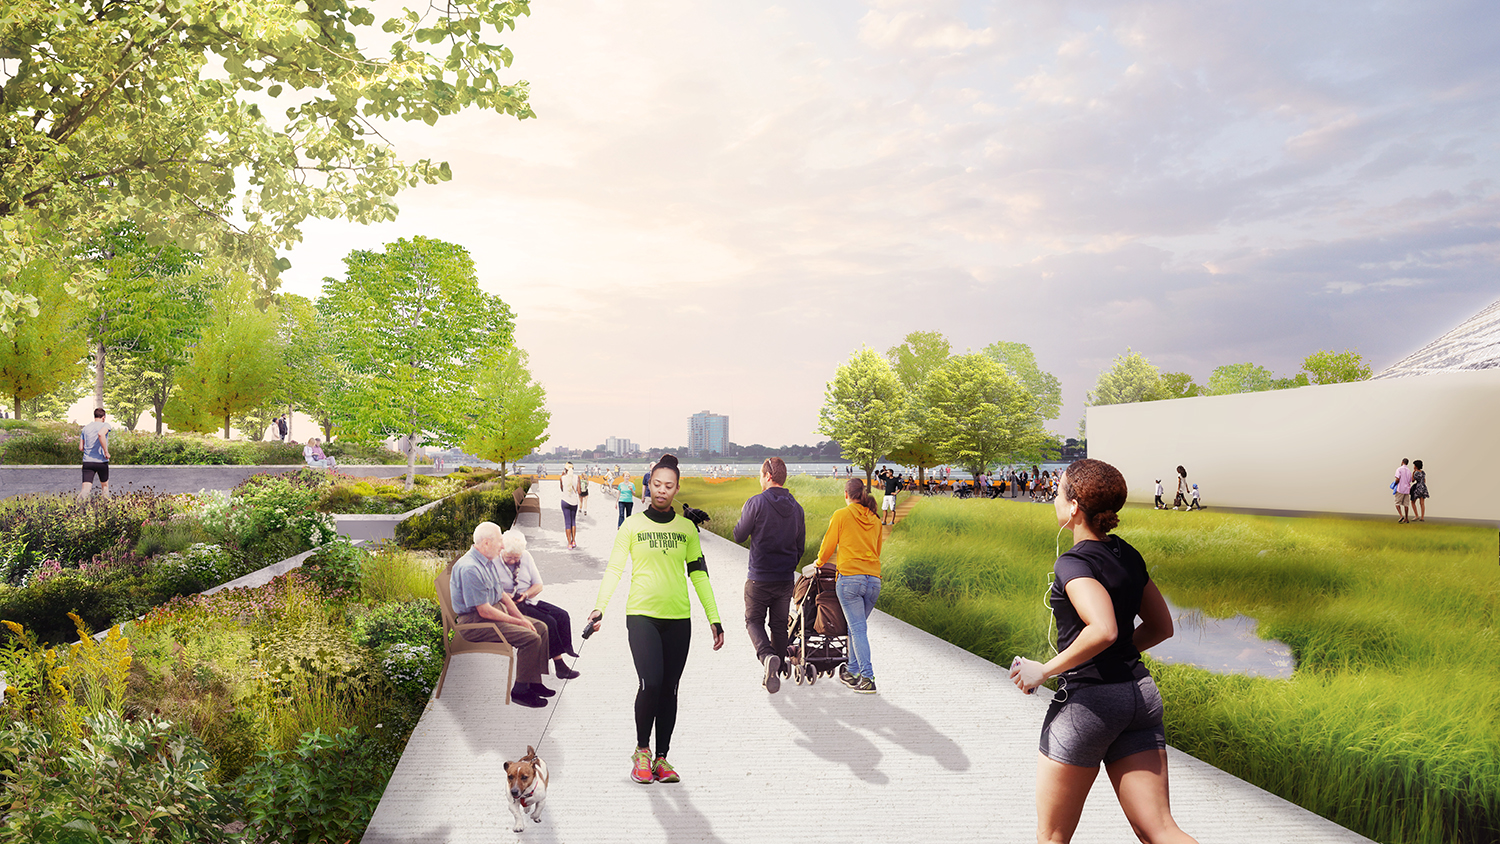 """""""May's Creek Garden"""" highlights native Michigan plants, provides a connection to the future greenway, and celebrates the historic creek that once existed near the park in a relaxing, lush environment."""